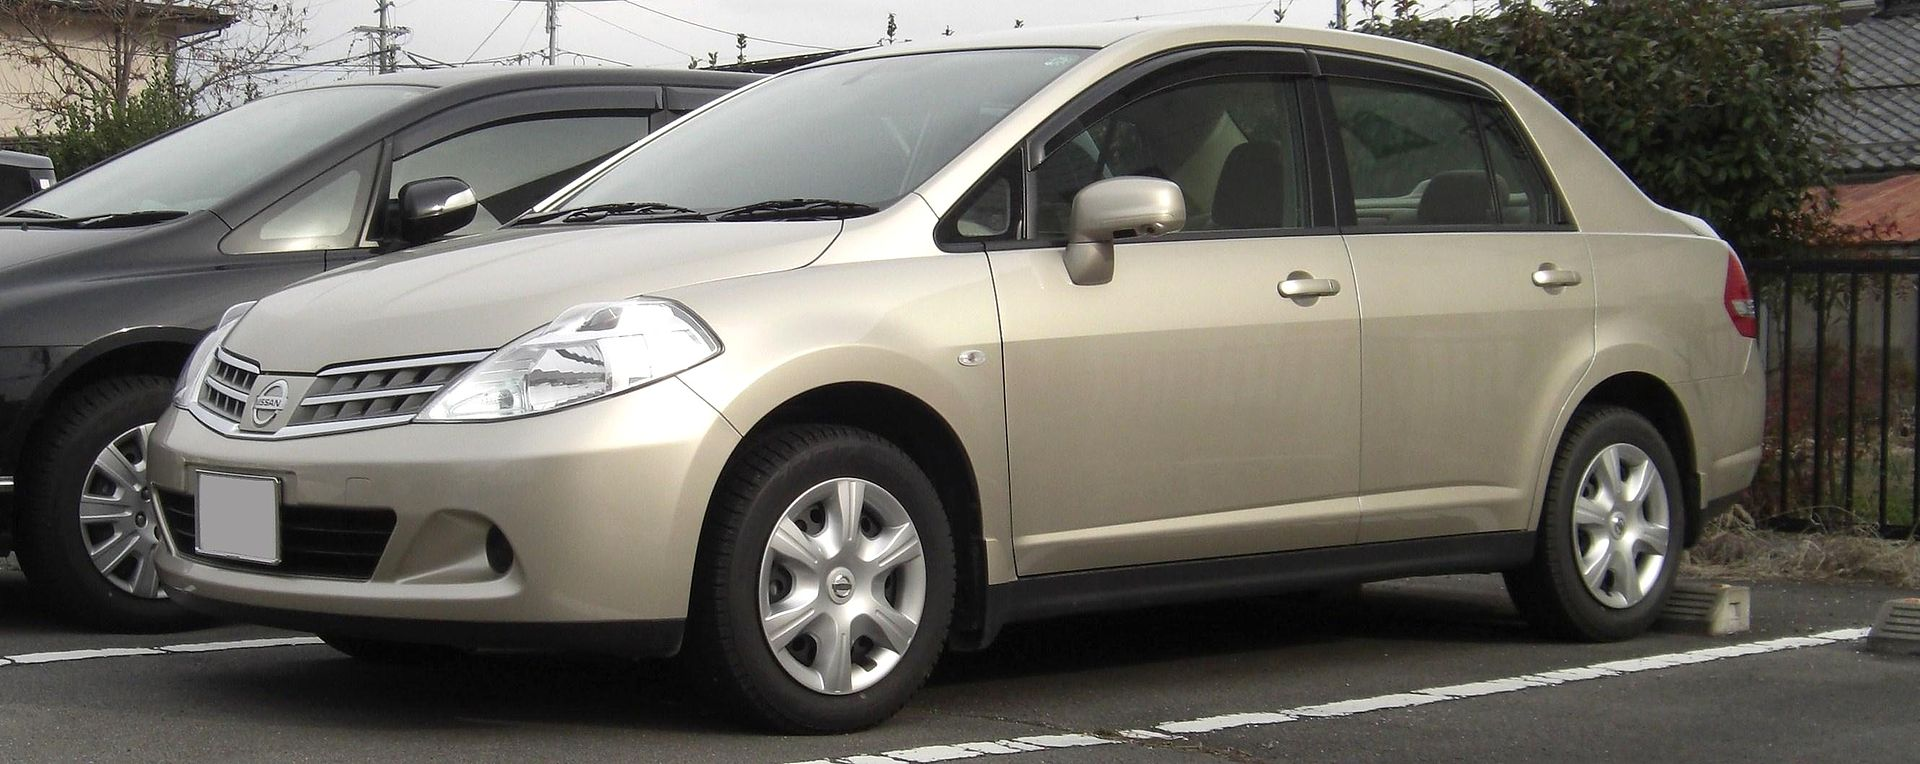 nissan_tiida_latio